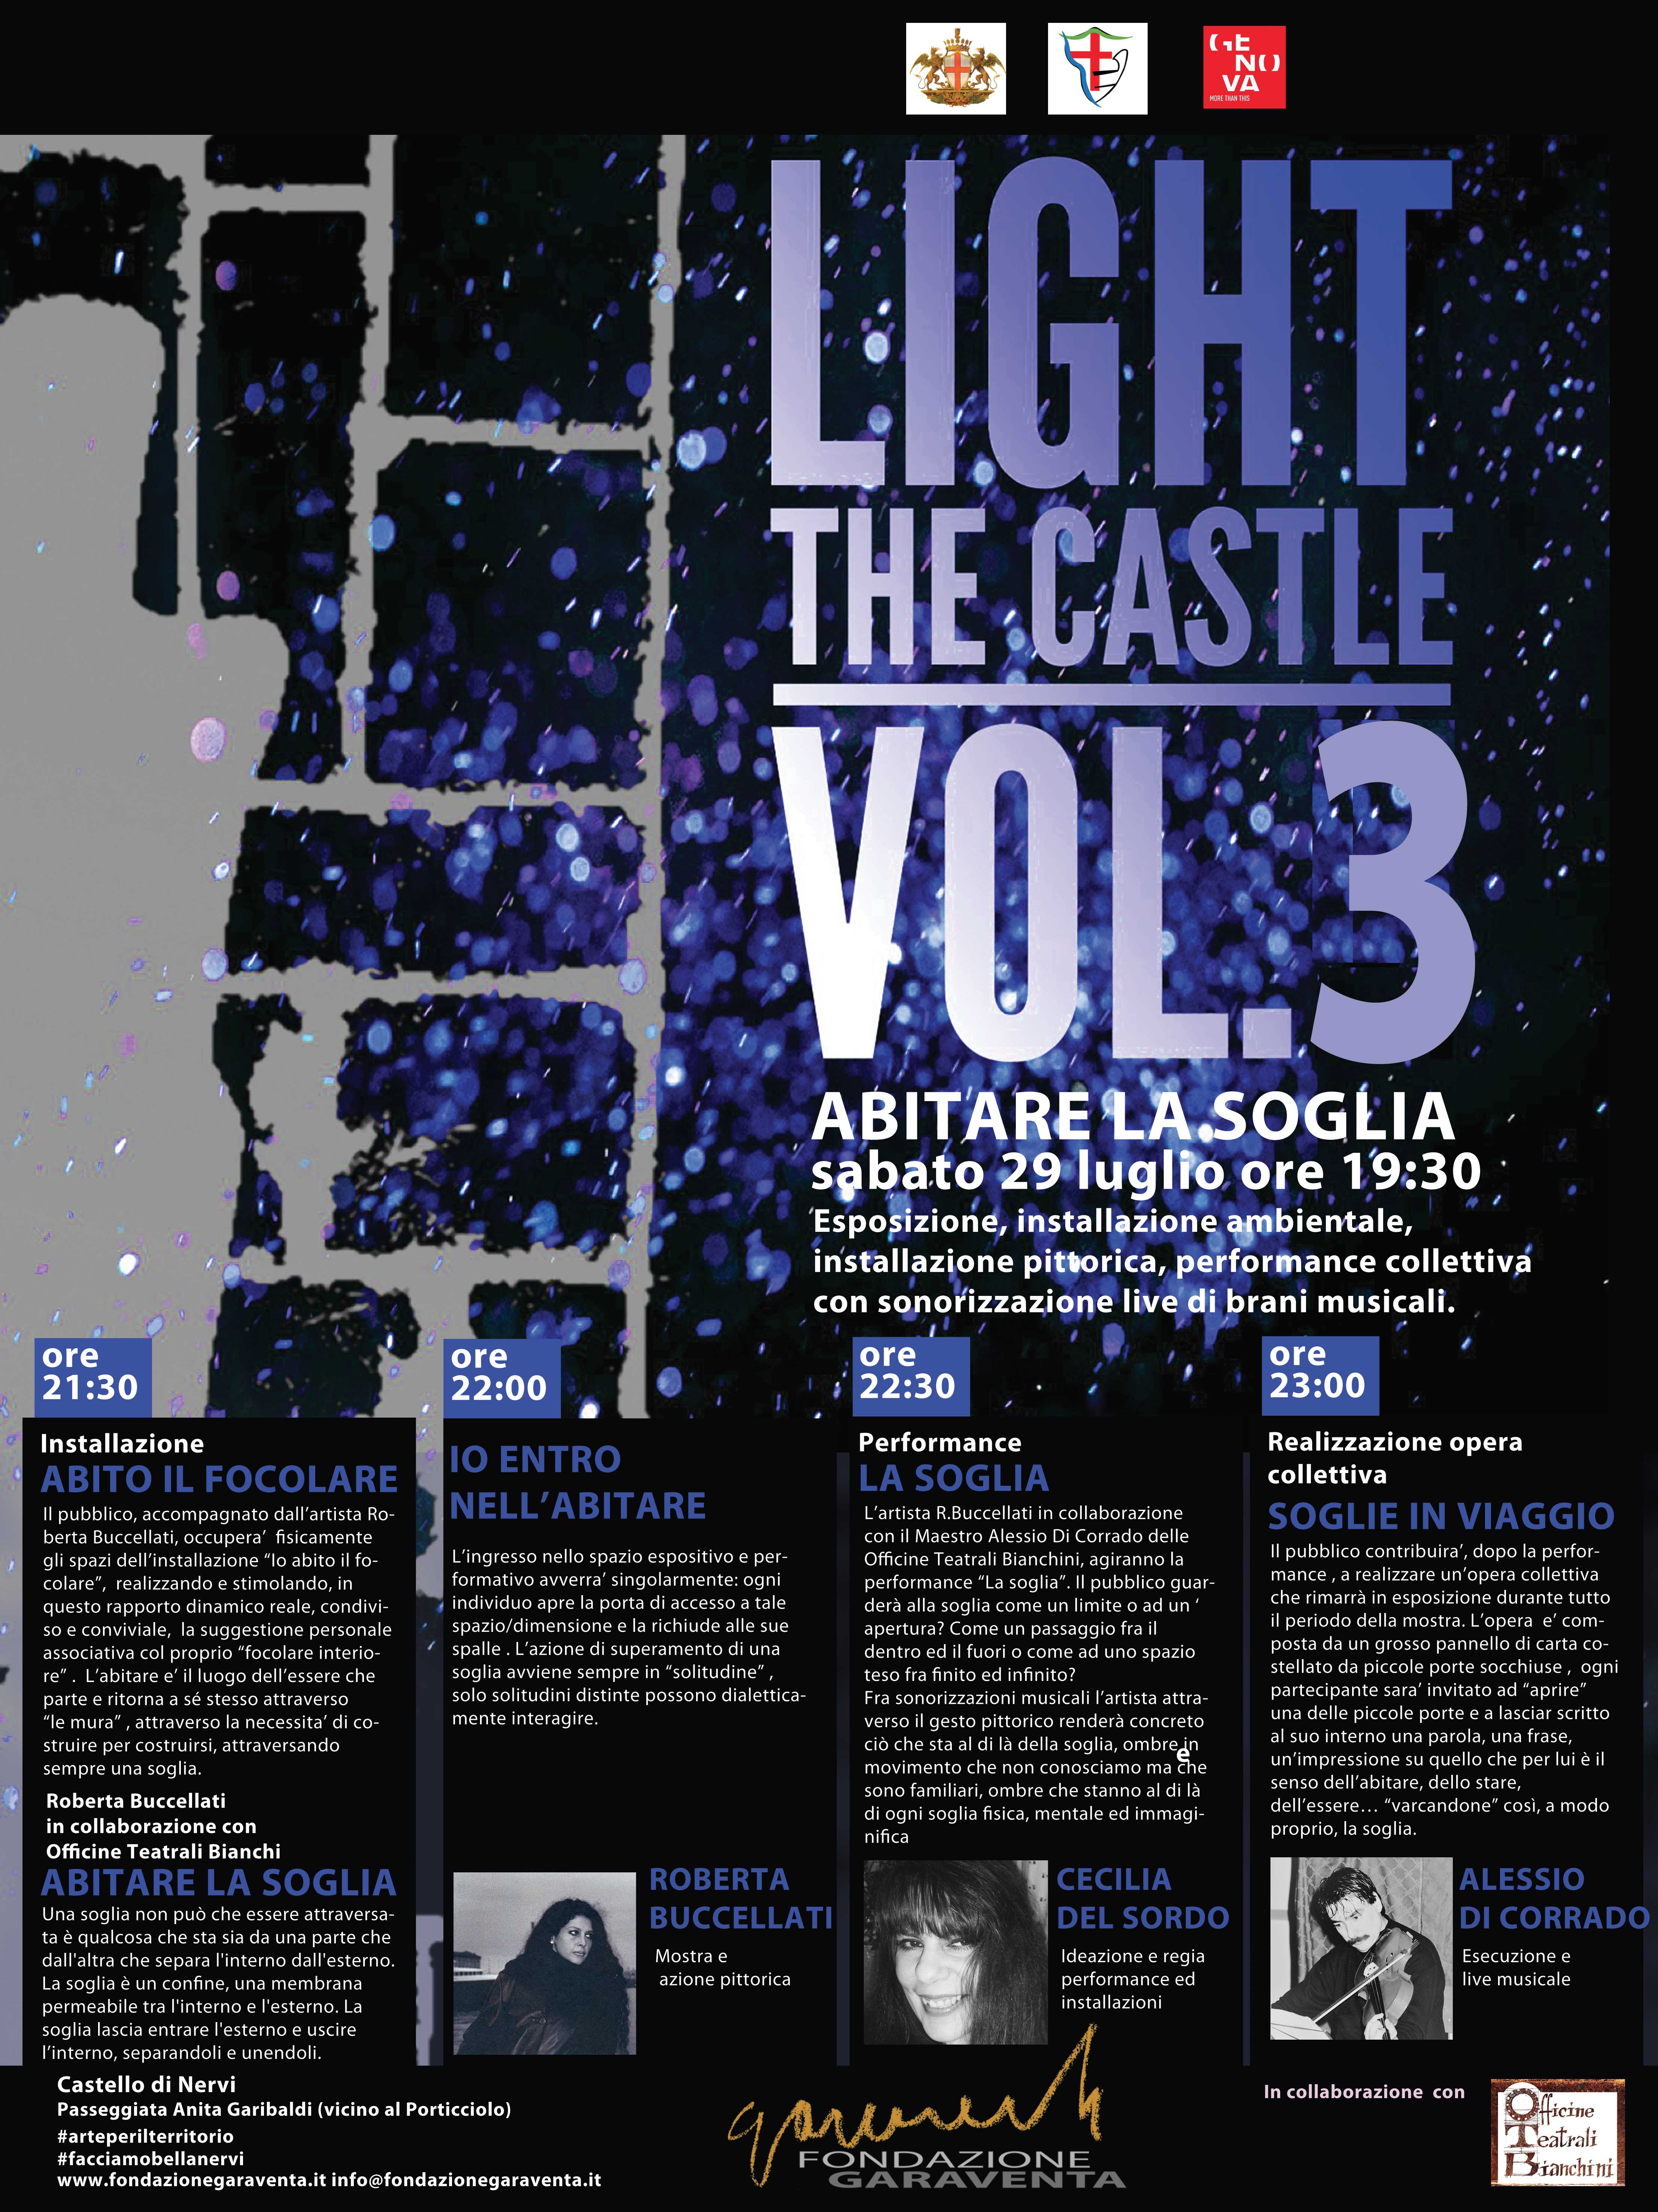 Abitare la soglia   LIGHT THE CASTLE vol.3